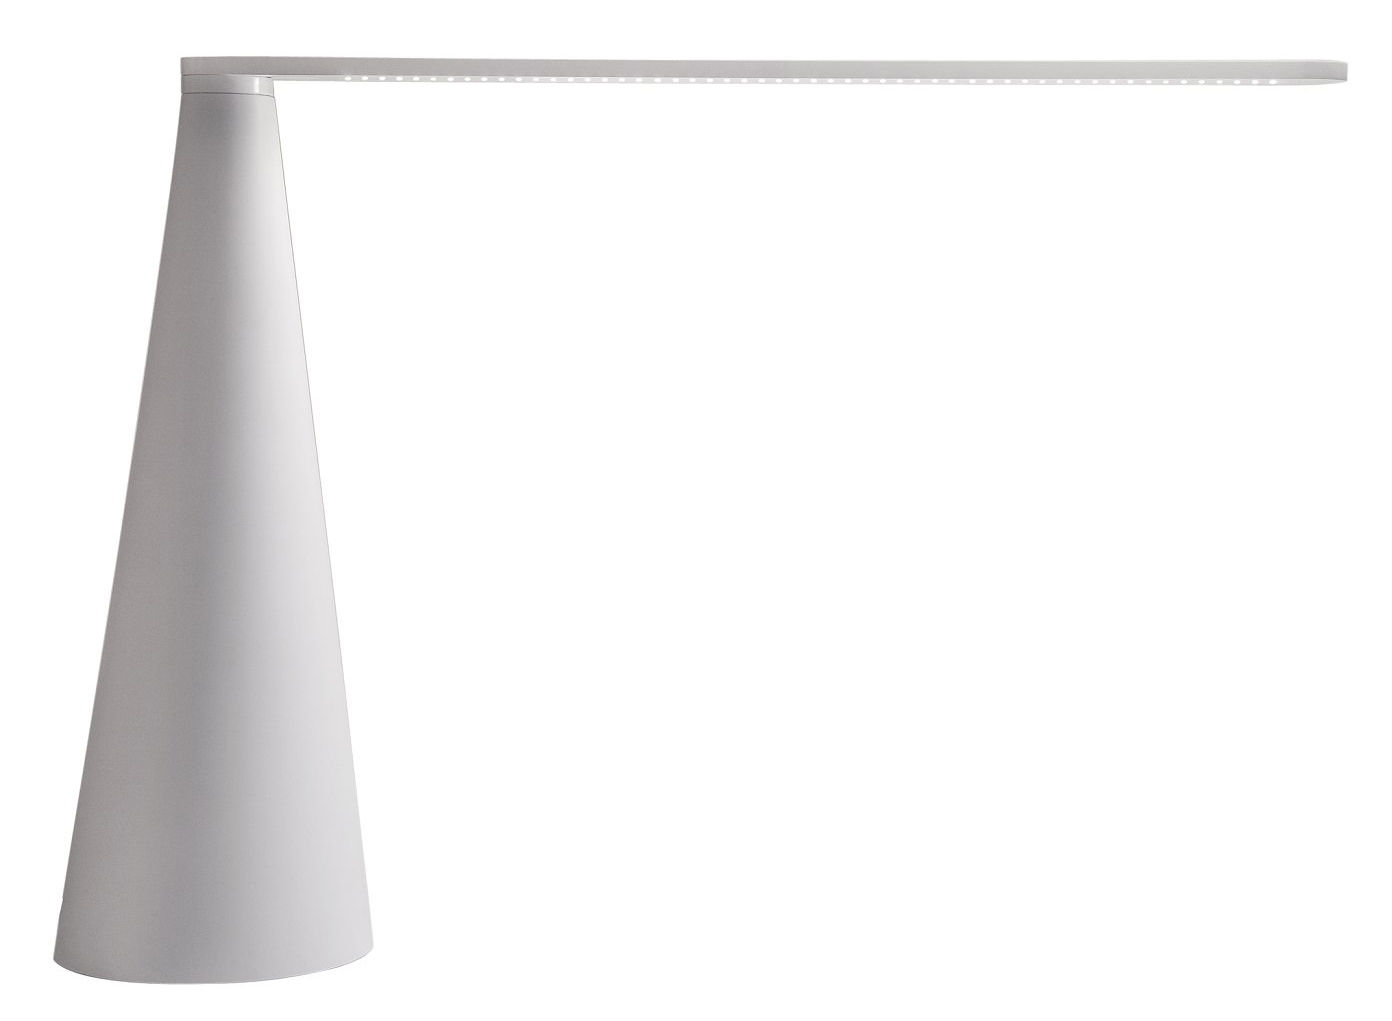 Lighting - Table Lamps - Elica Table lamp - Large version H 52 cm by Martinelli Luce - White - Aluminium